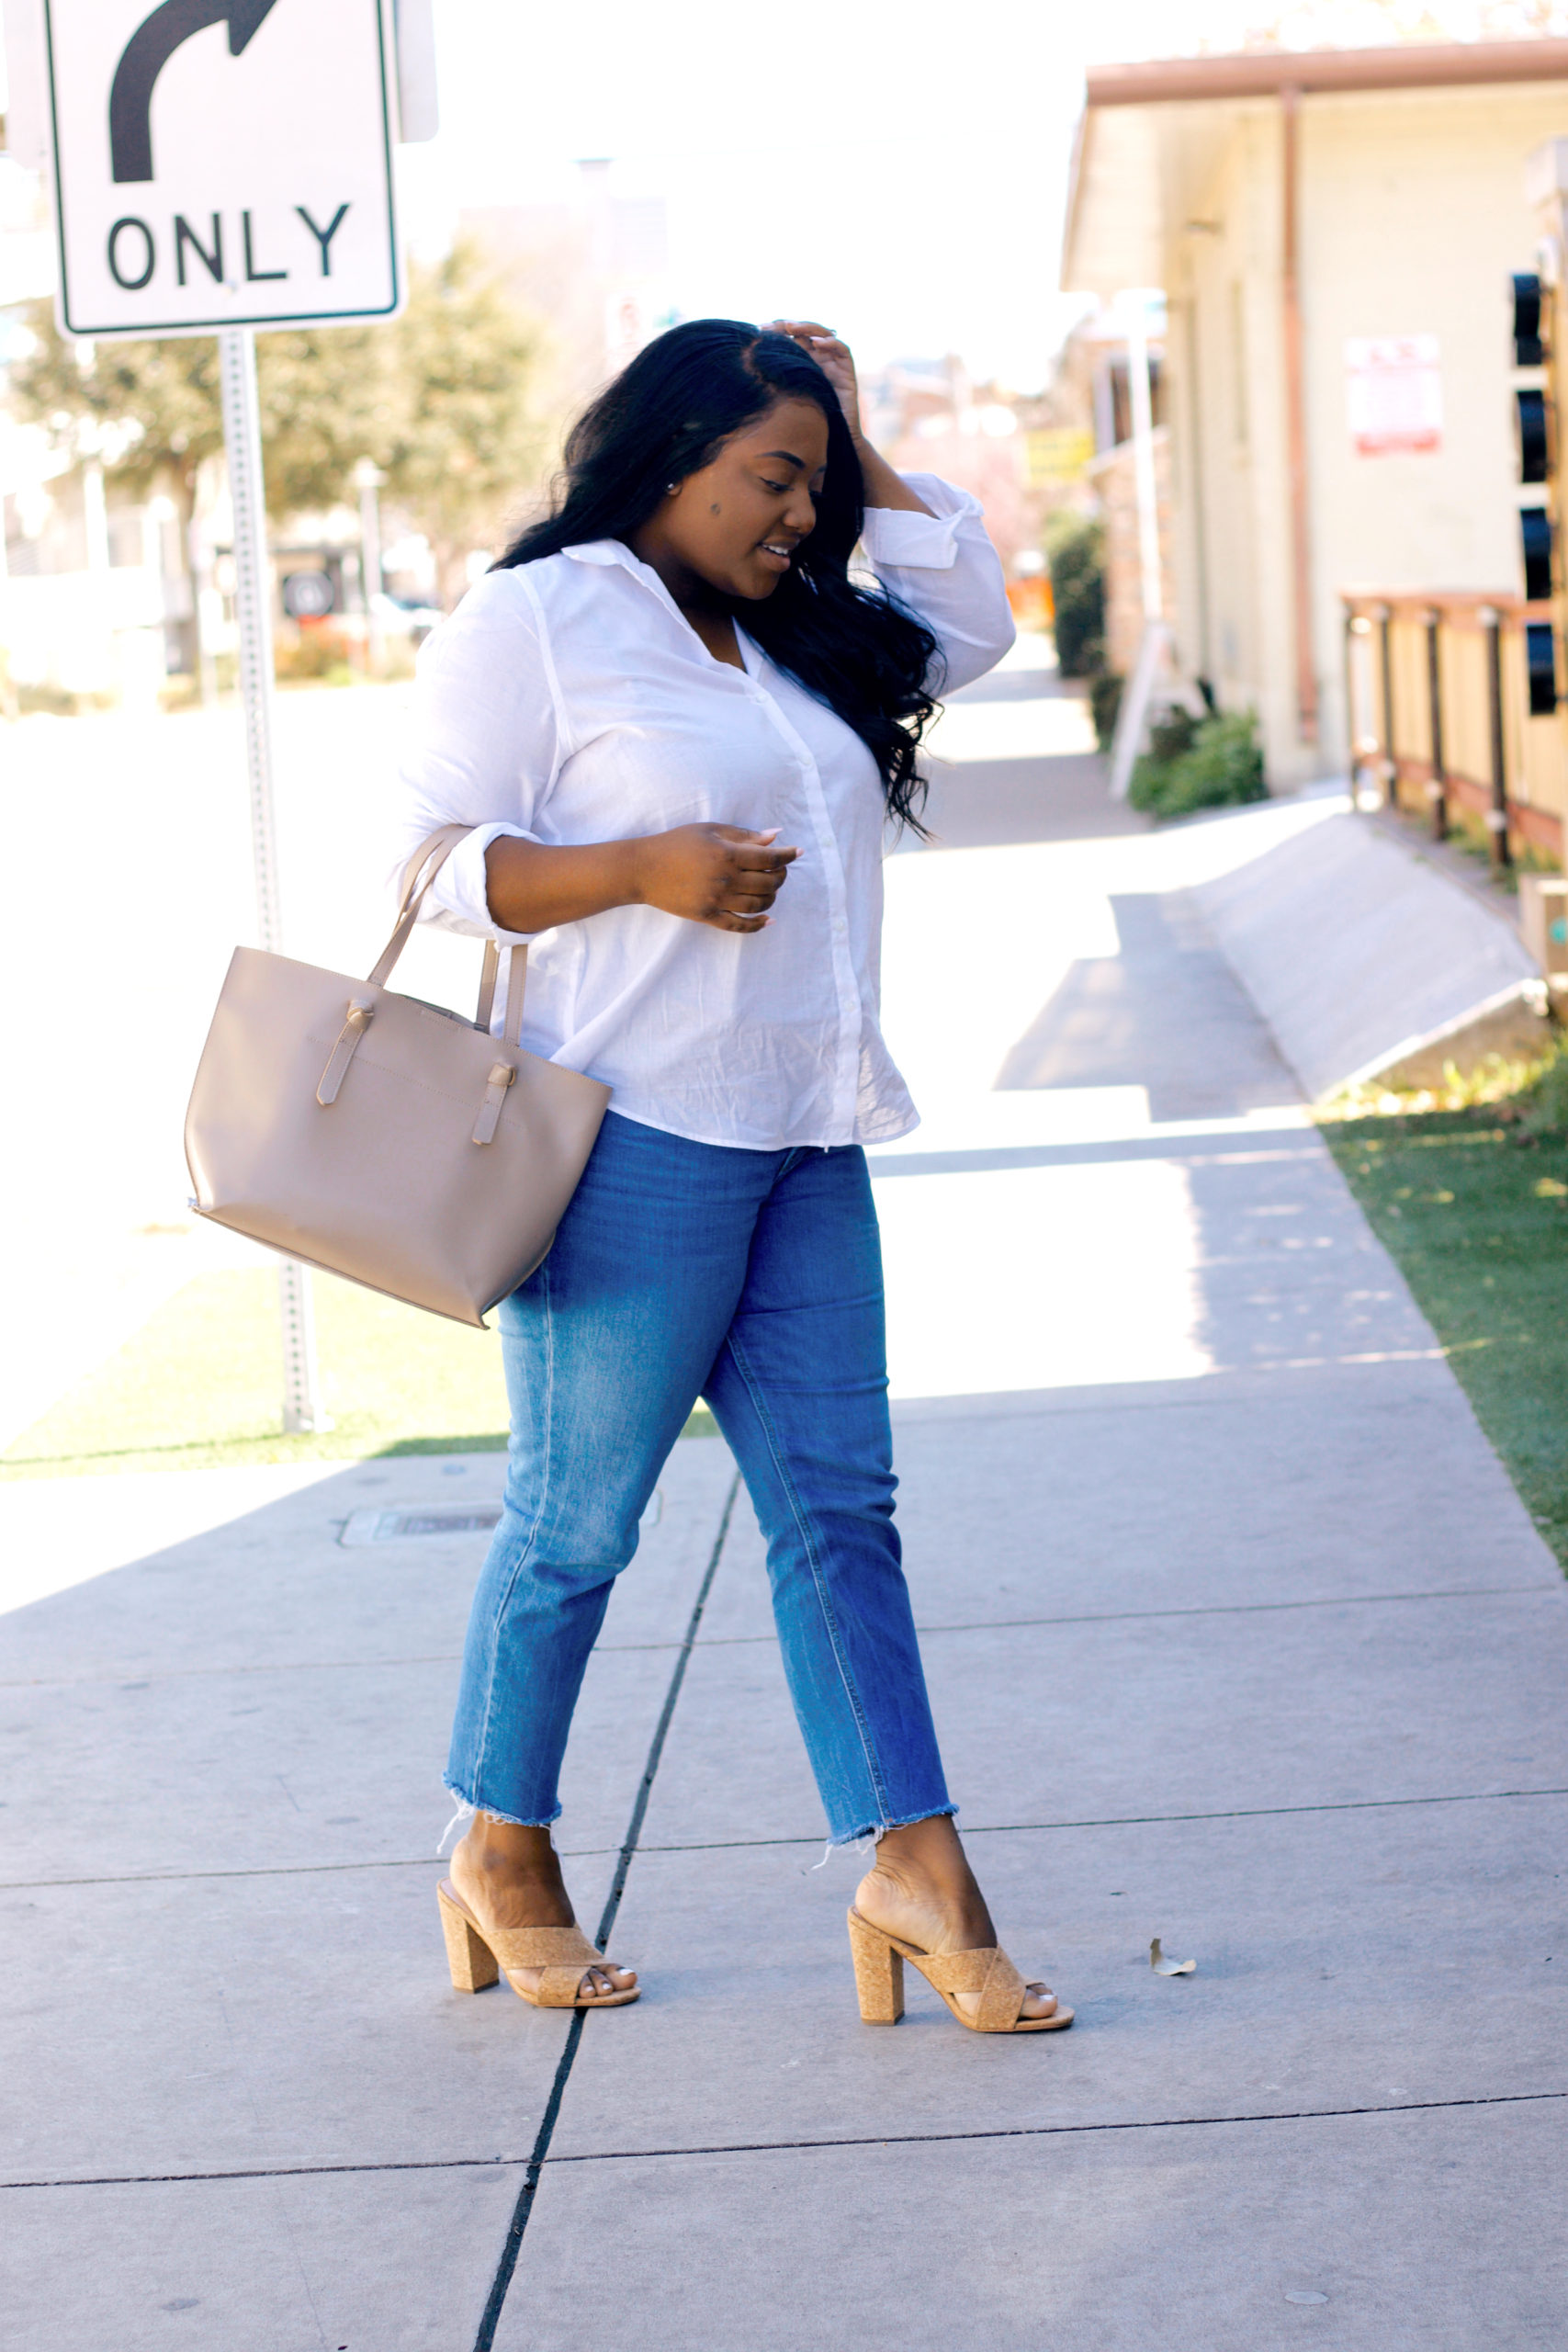 go-to Spring outfit with white button downs and jeans and tan cork sandals